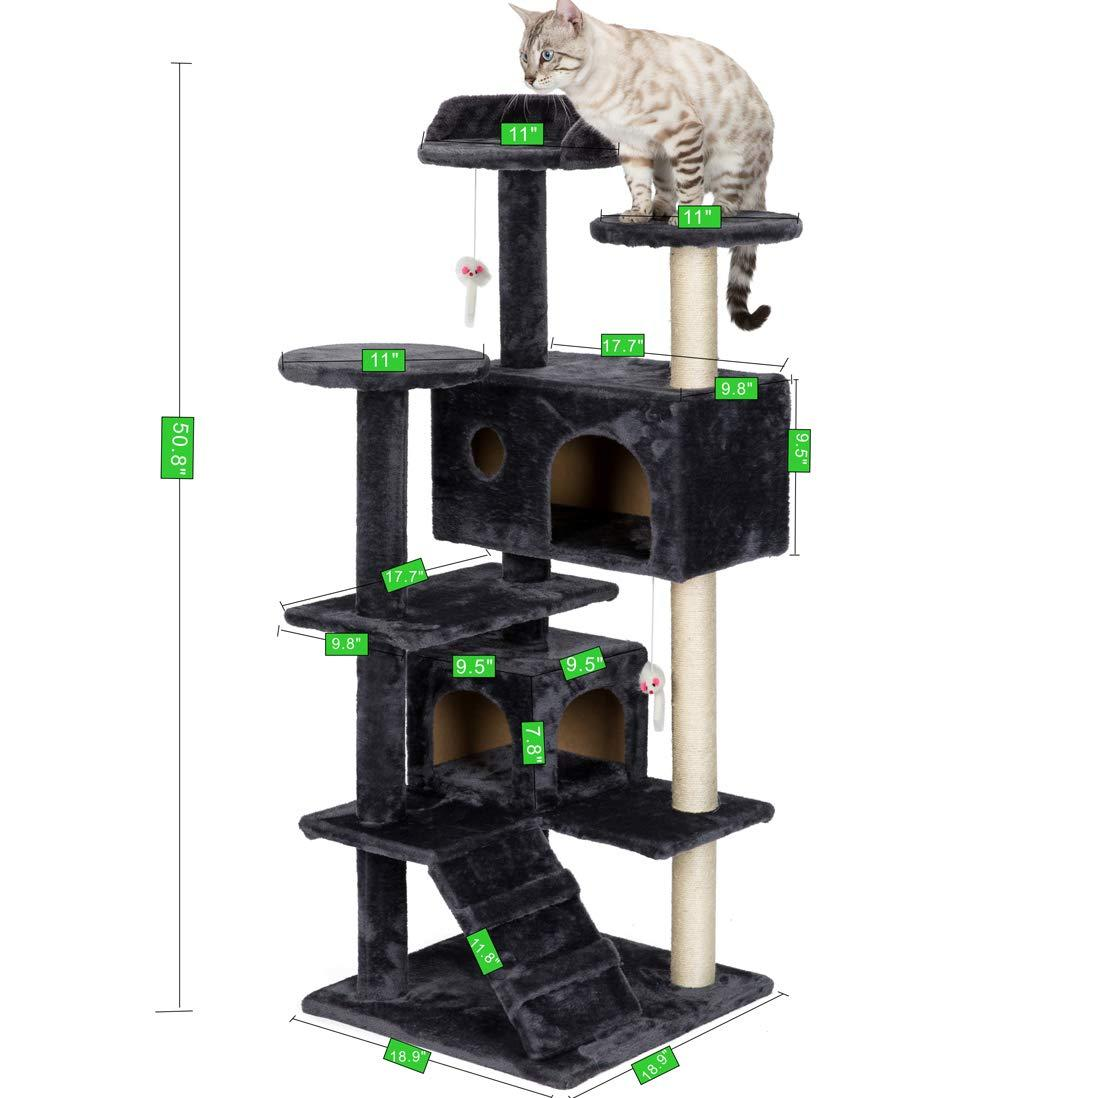 2021 Jarl Home 51 Multi Level Cat Tree Tower Activity Cat Trees 2 Condo Houses Scratch Post For Kittens Plush Cat Play Scratching Trees From Jarlhome 56 29 Dhgate Com